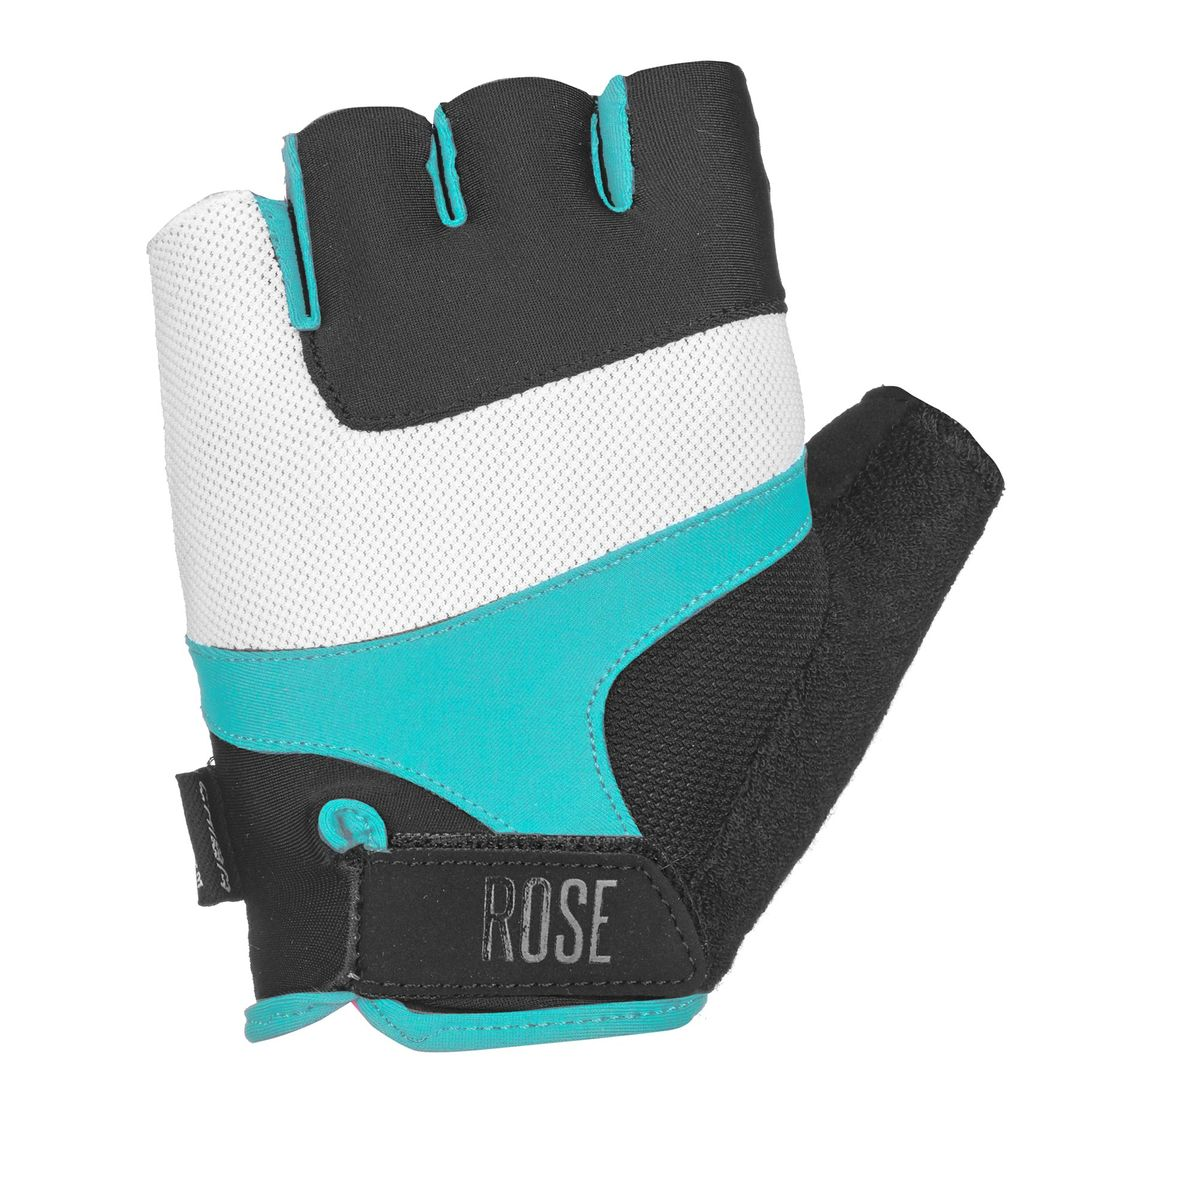 RSH GEL 03 gloves